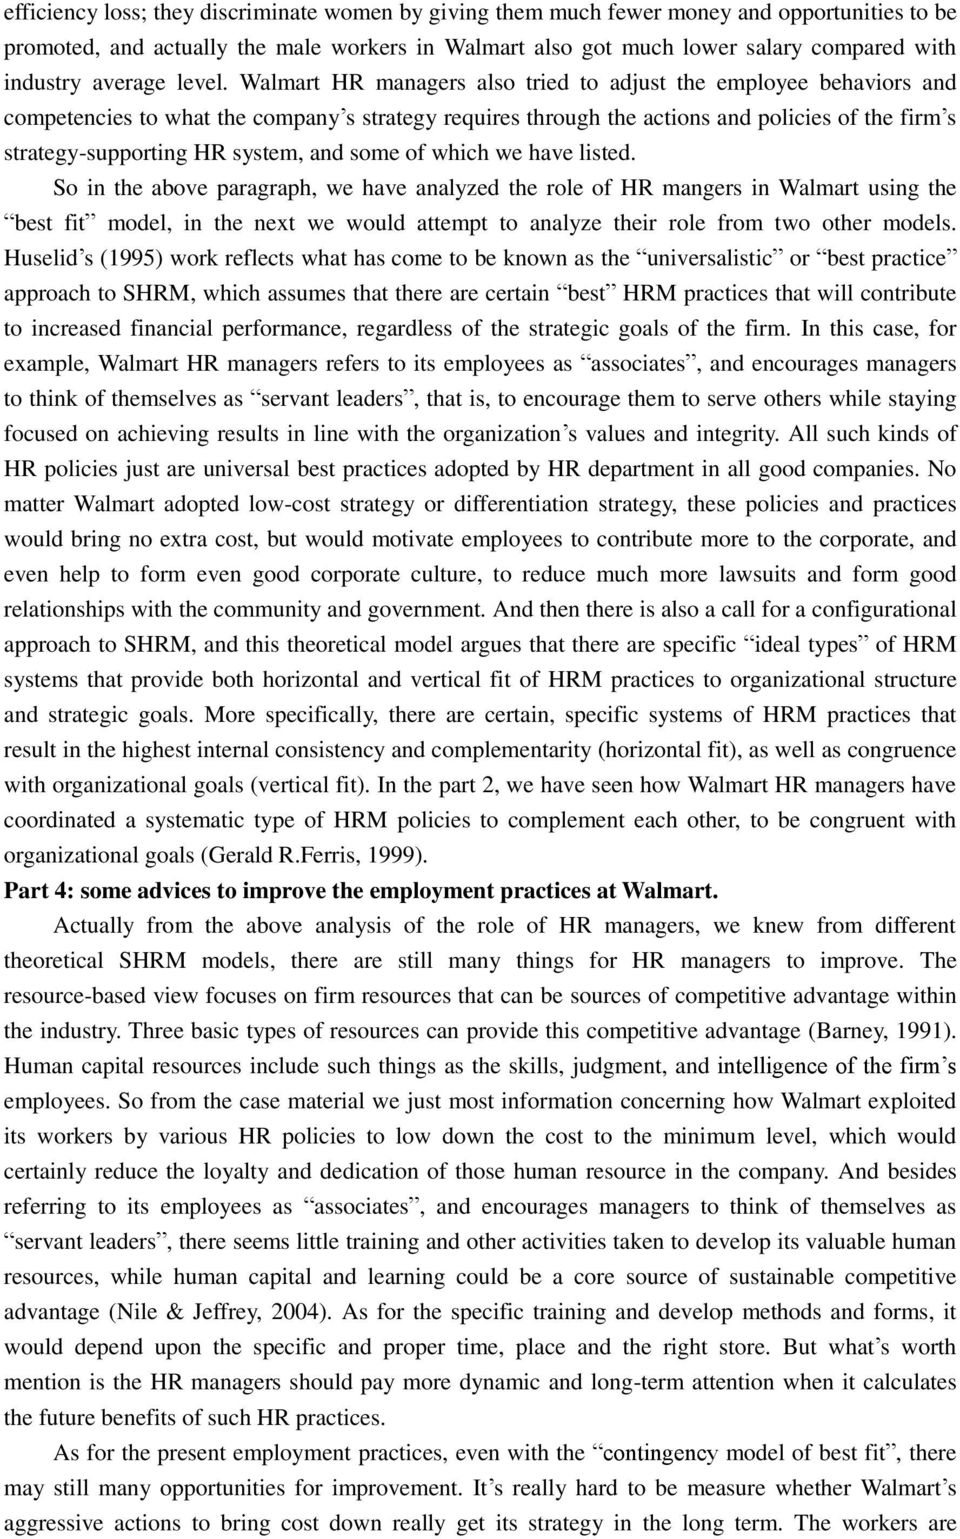 Case study of strategic human resource management in Walmart